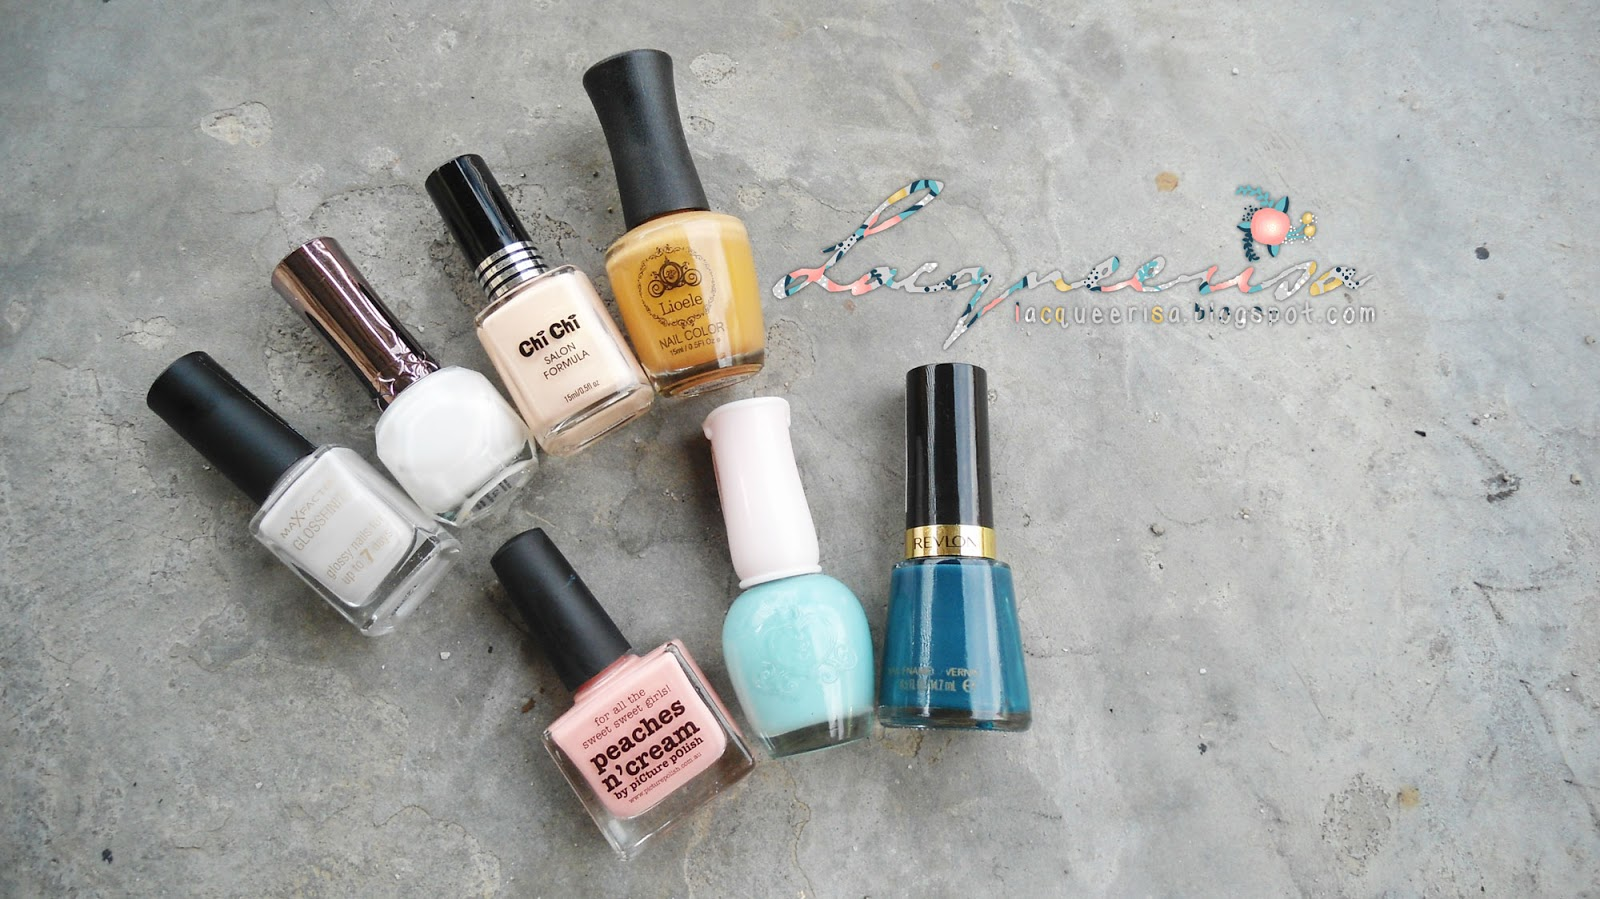 Lacqueerisa: Creamy Dreamy Floral Nails, Nail Polishes Used